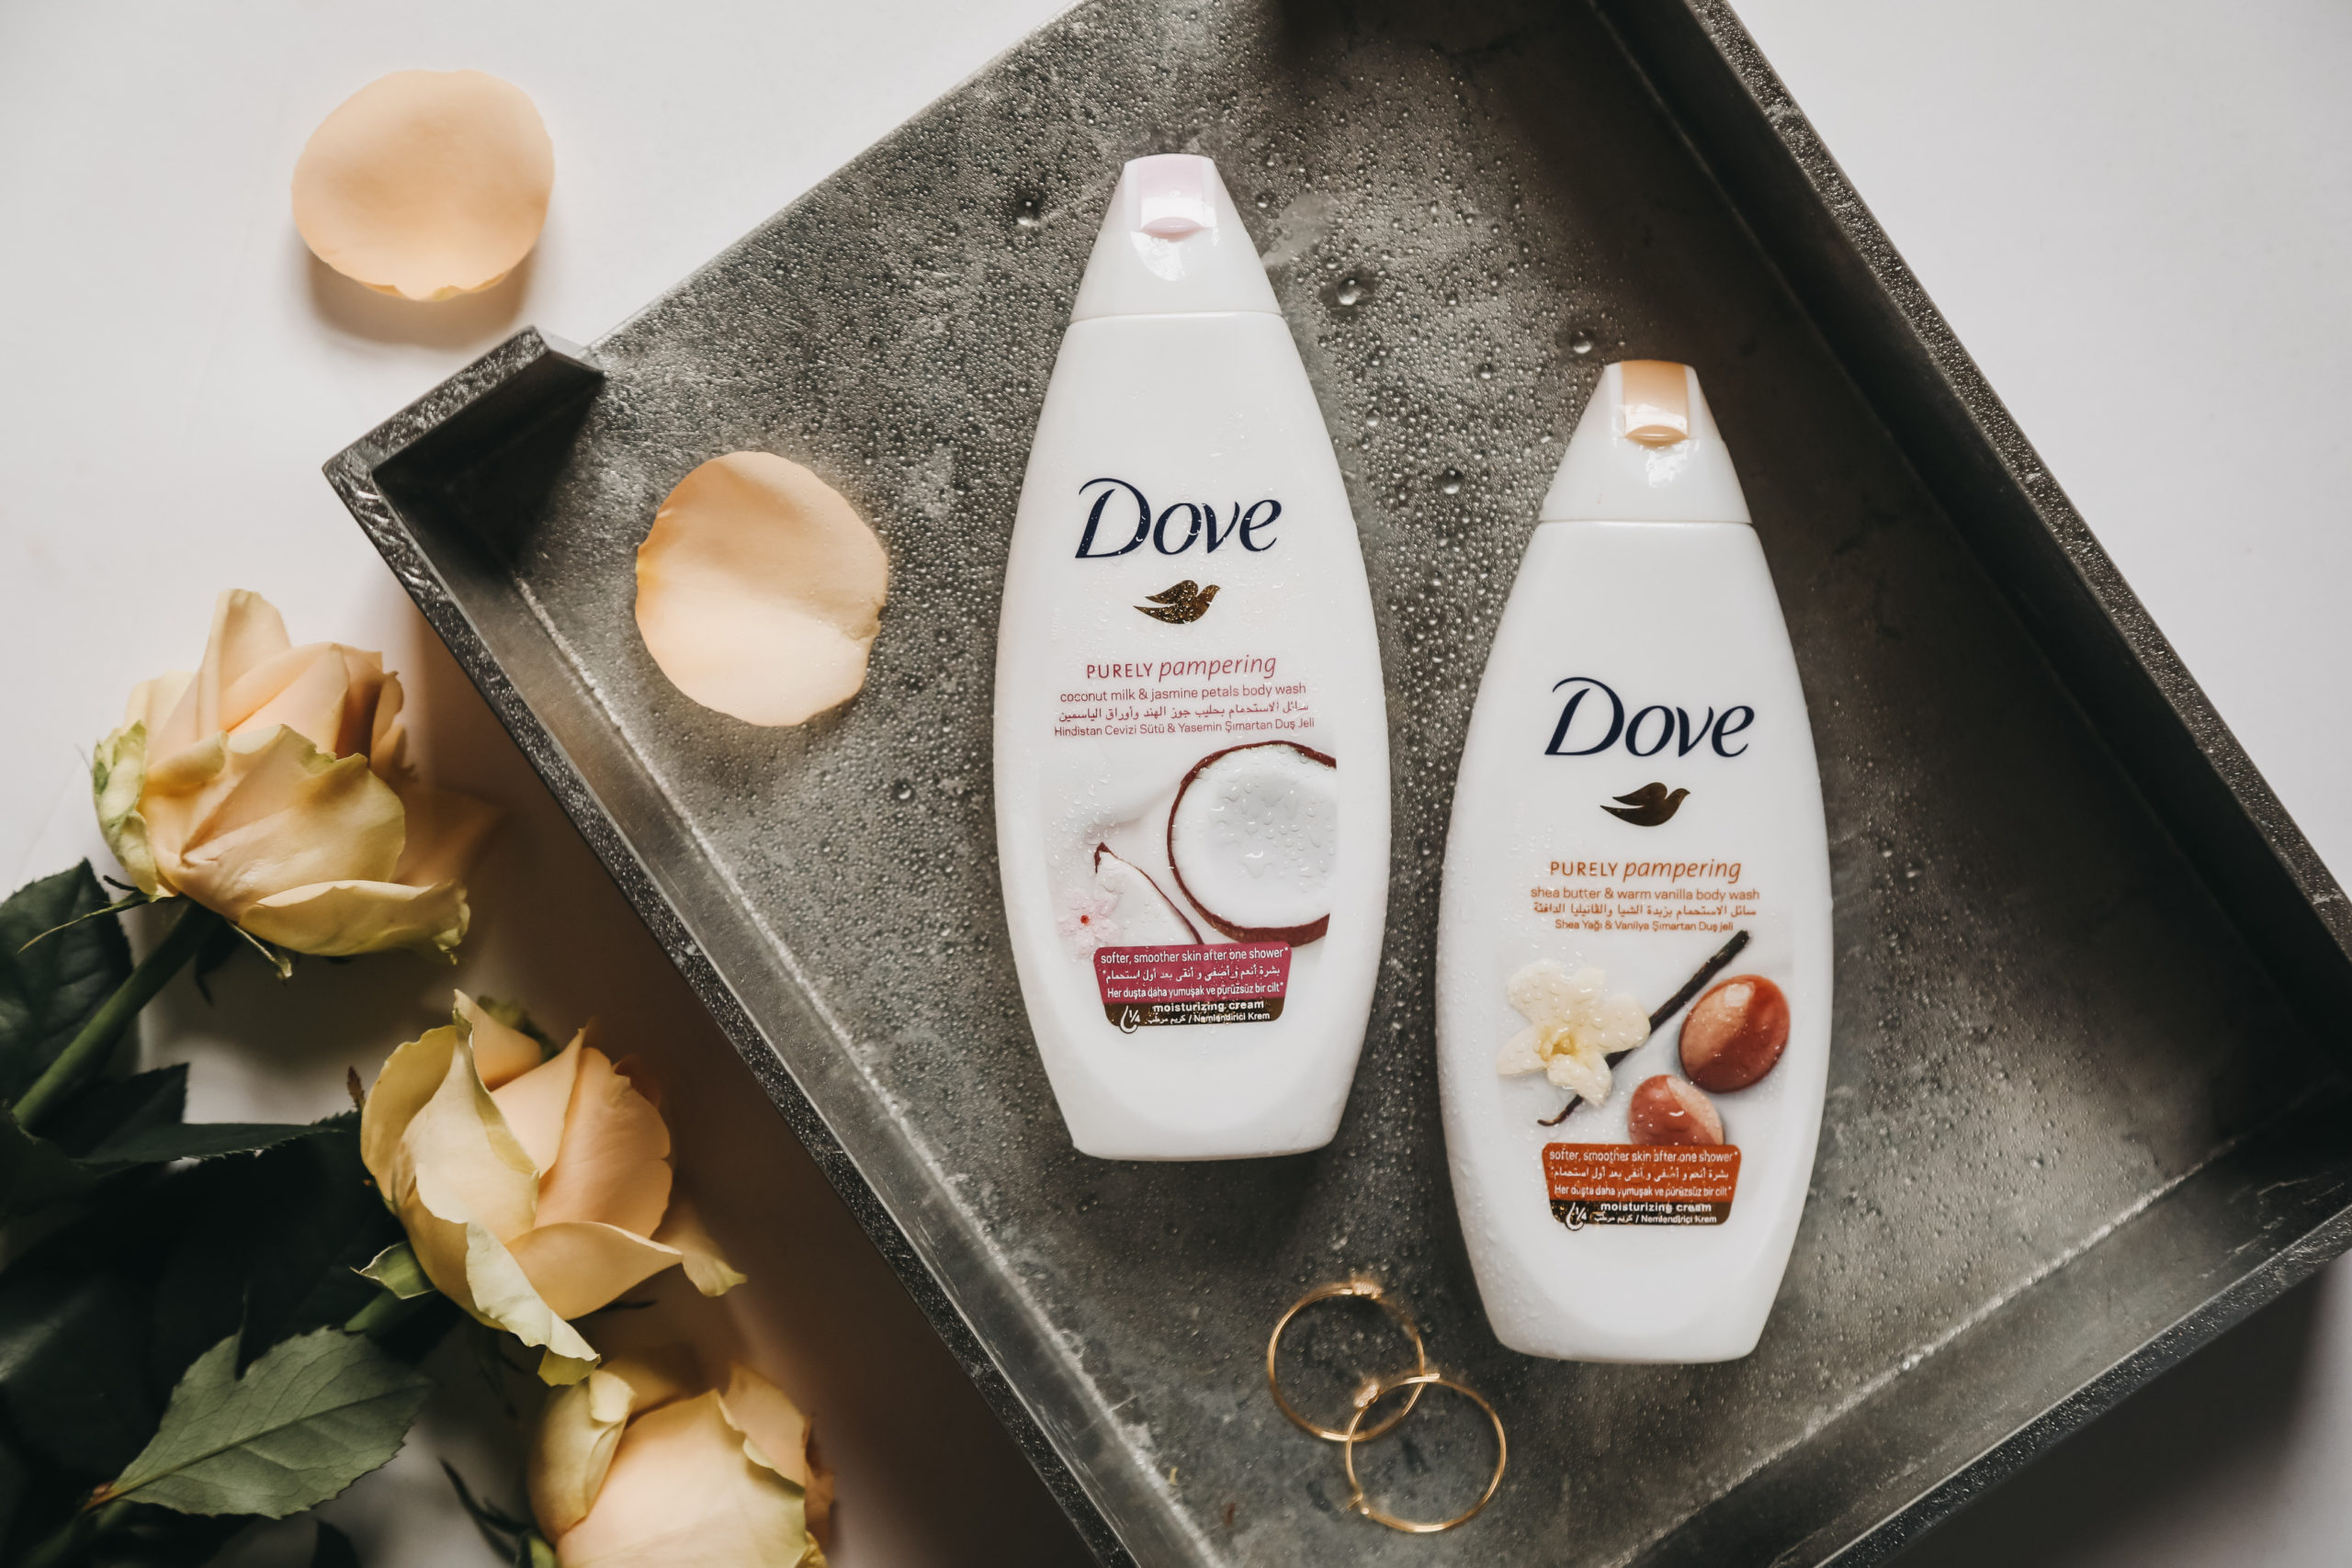 purely pampering dove body wash